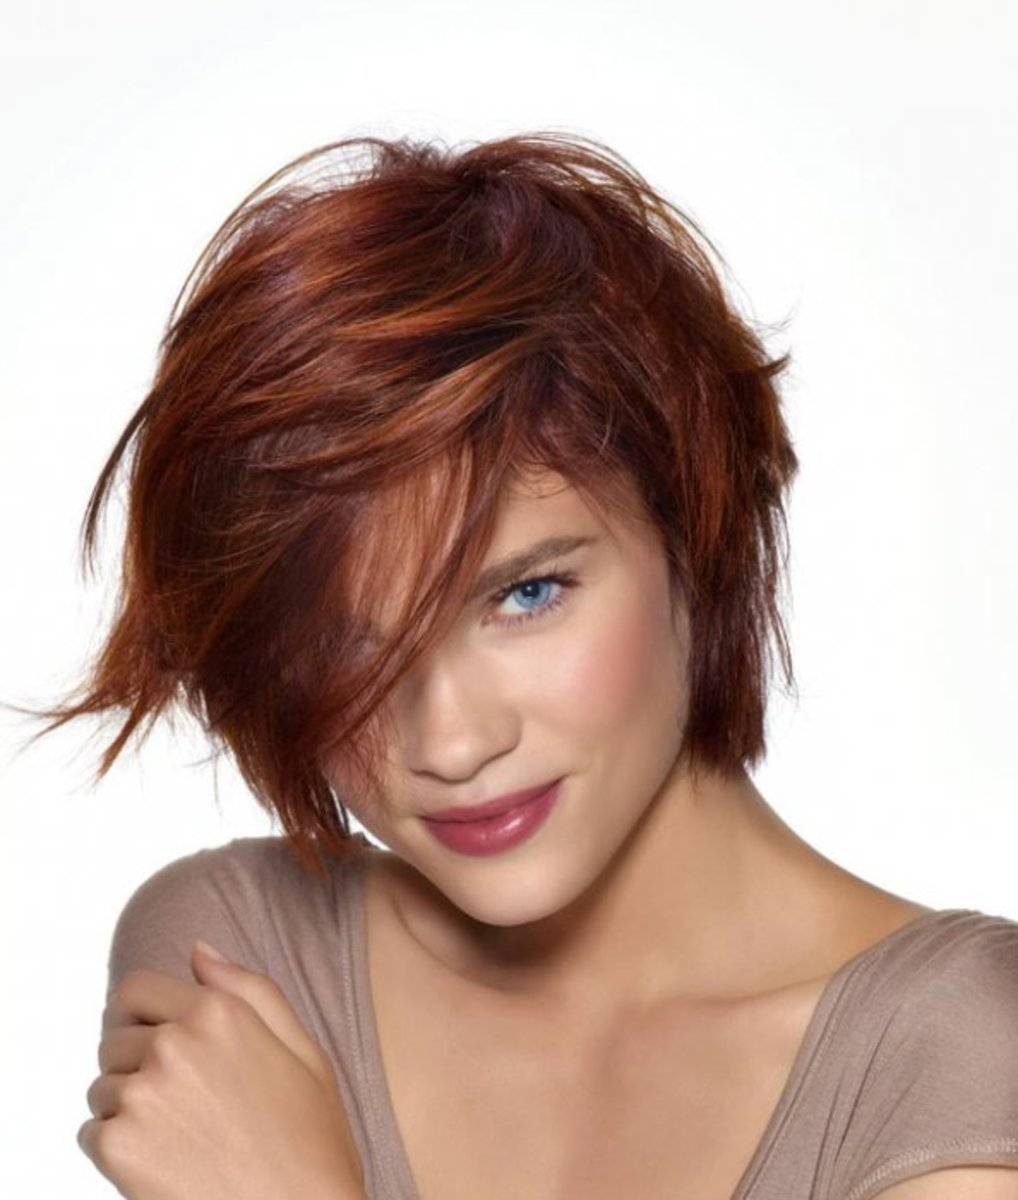 80's Short Hairstyle by St. Algue